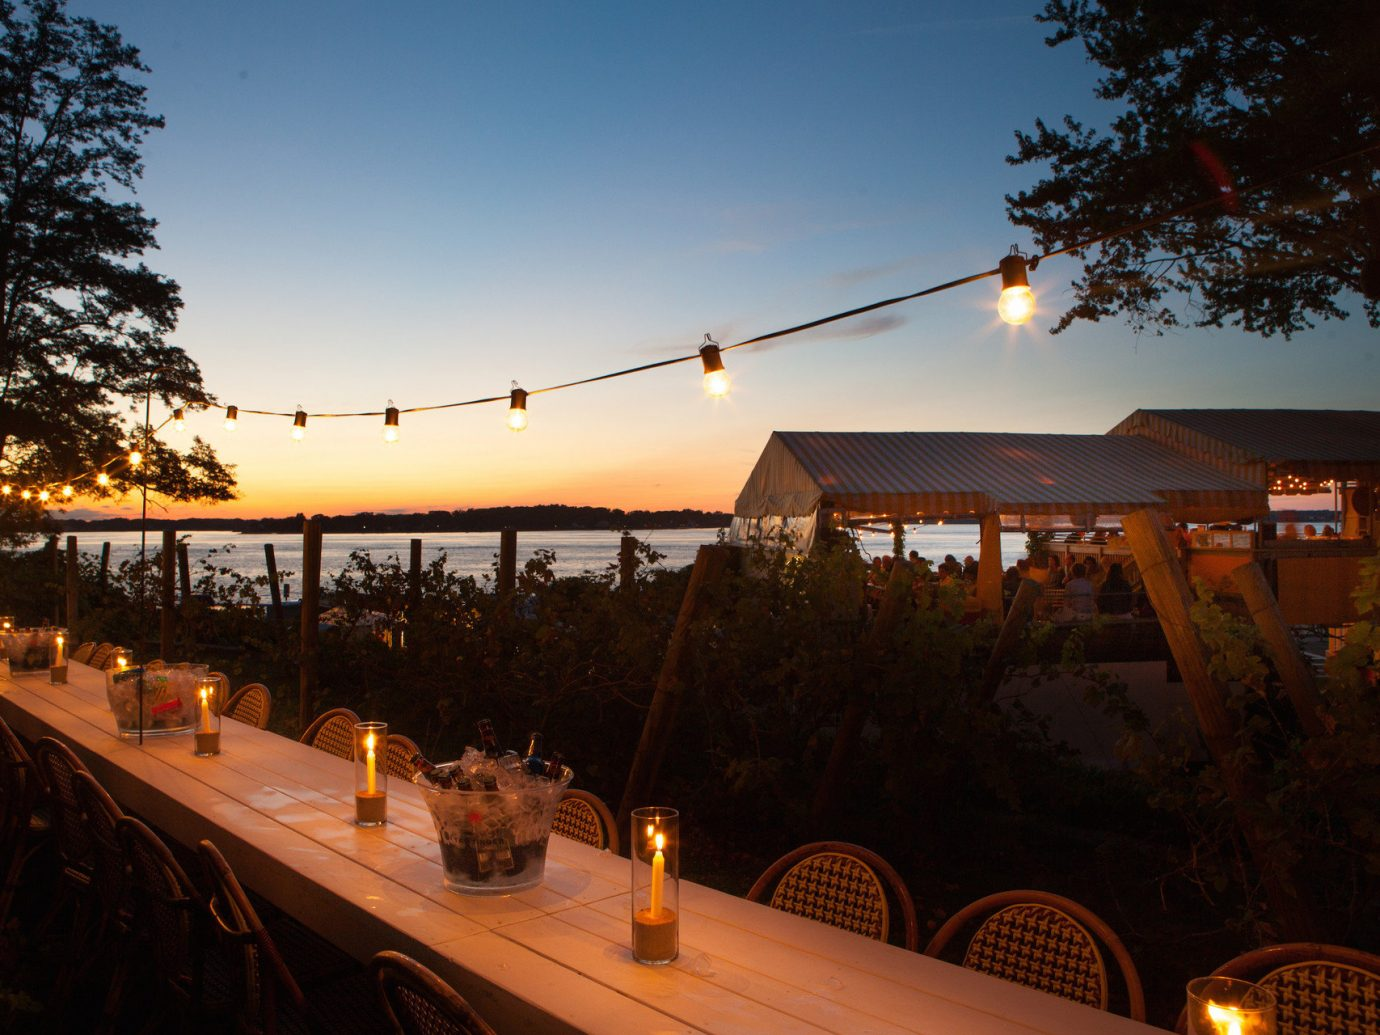 ambient lighting Beachfront dusk Ocean Romance Romantic string lights Sunset Trip Ideas Weekend Getaways tree outdoor sky night light evening lighting Resort day